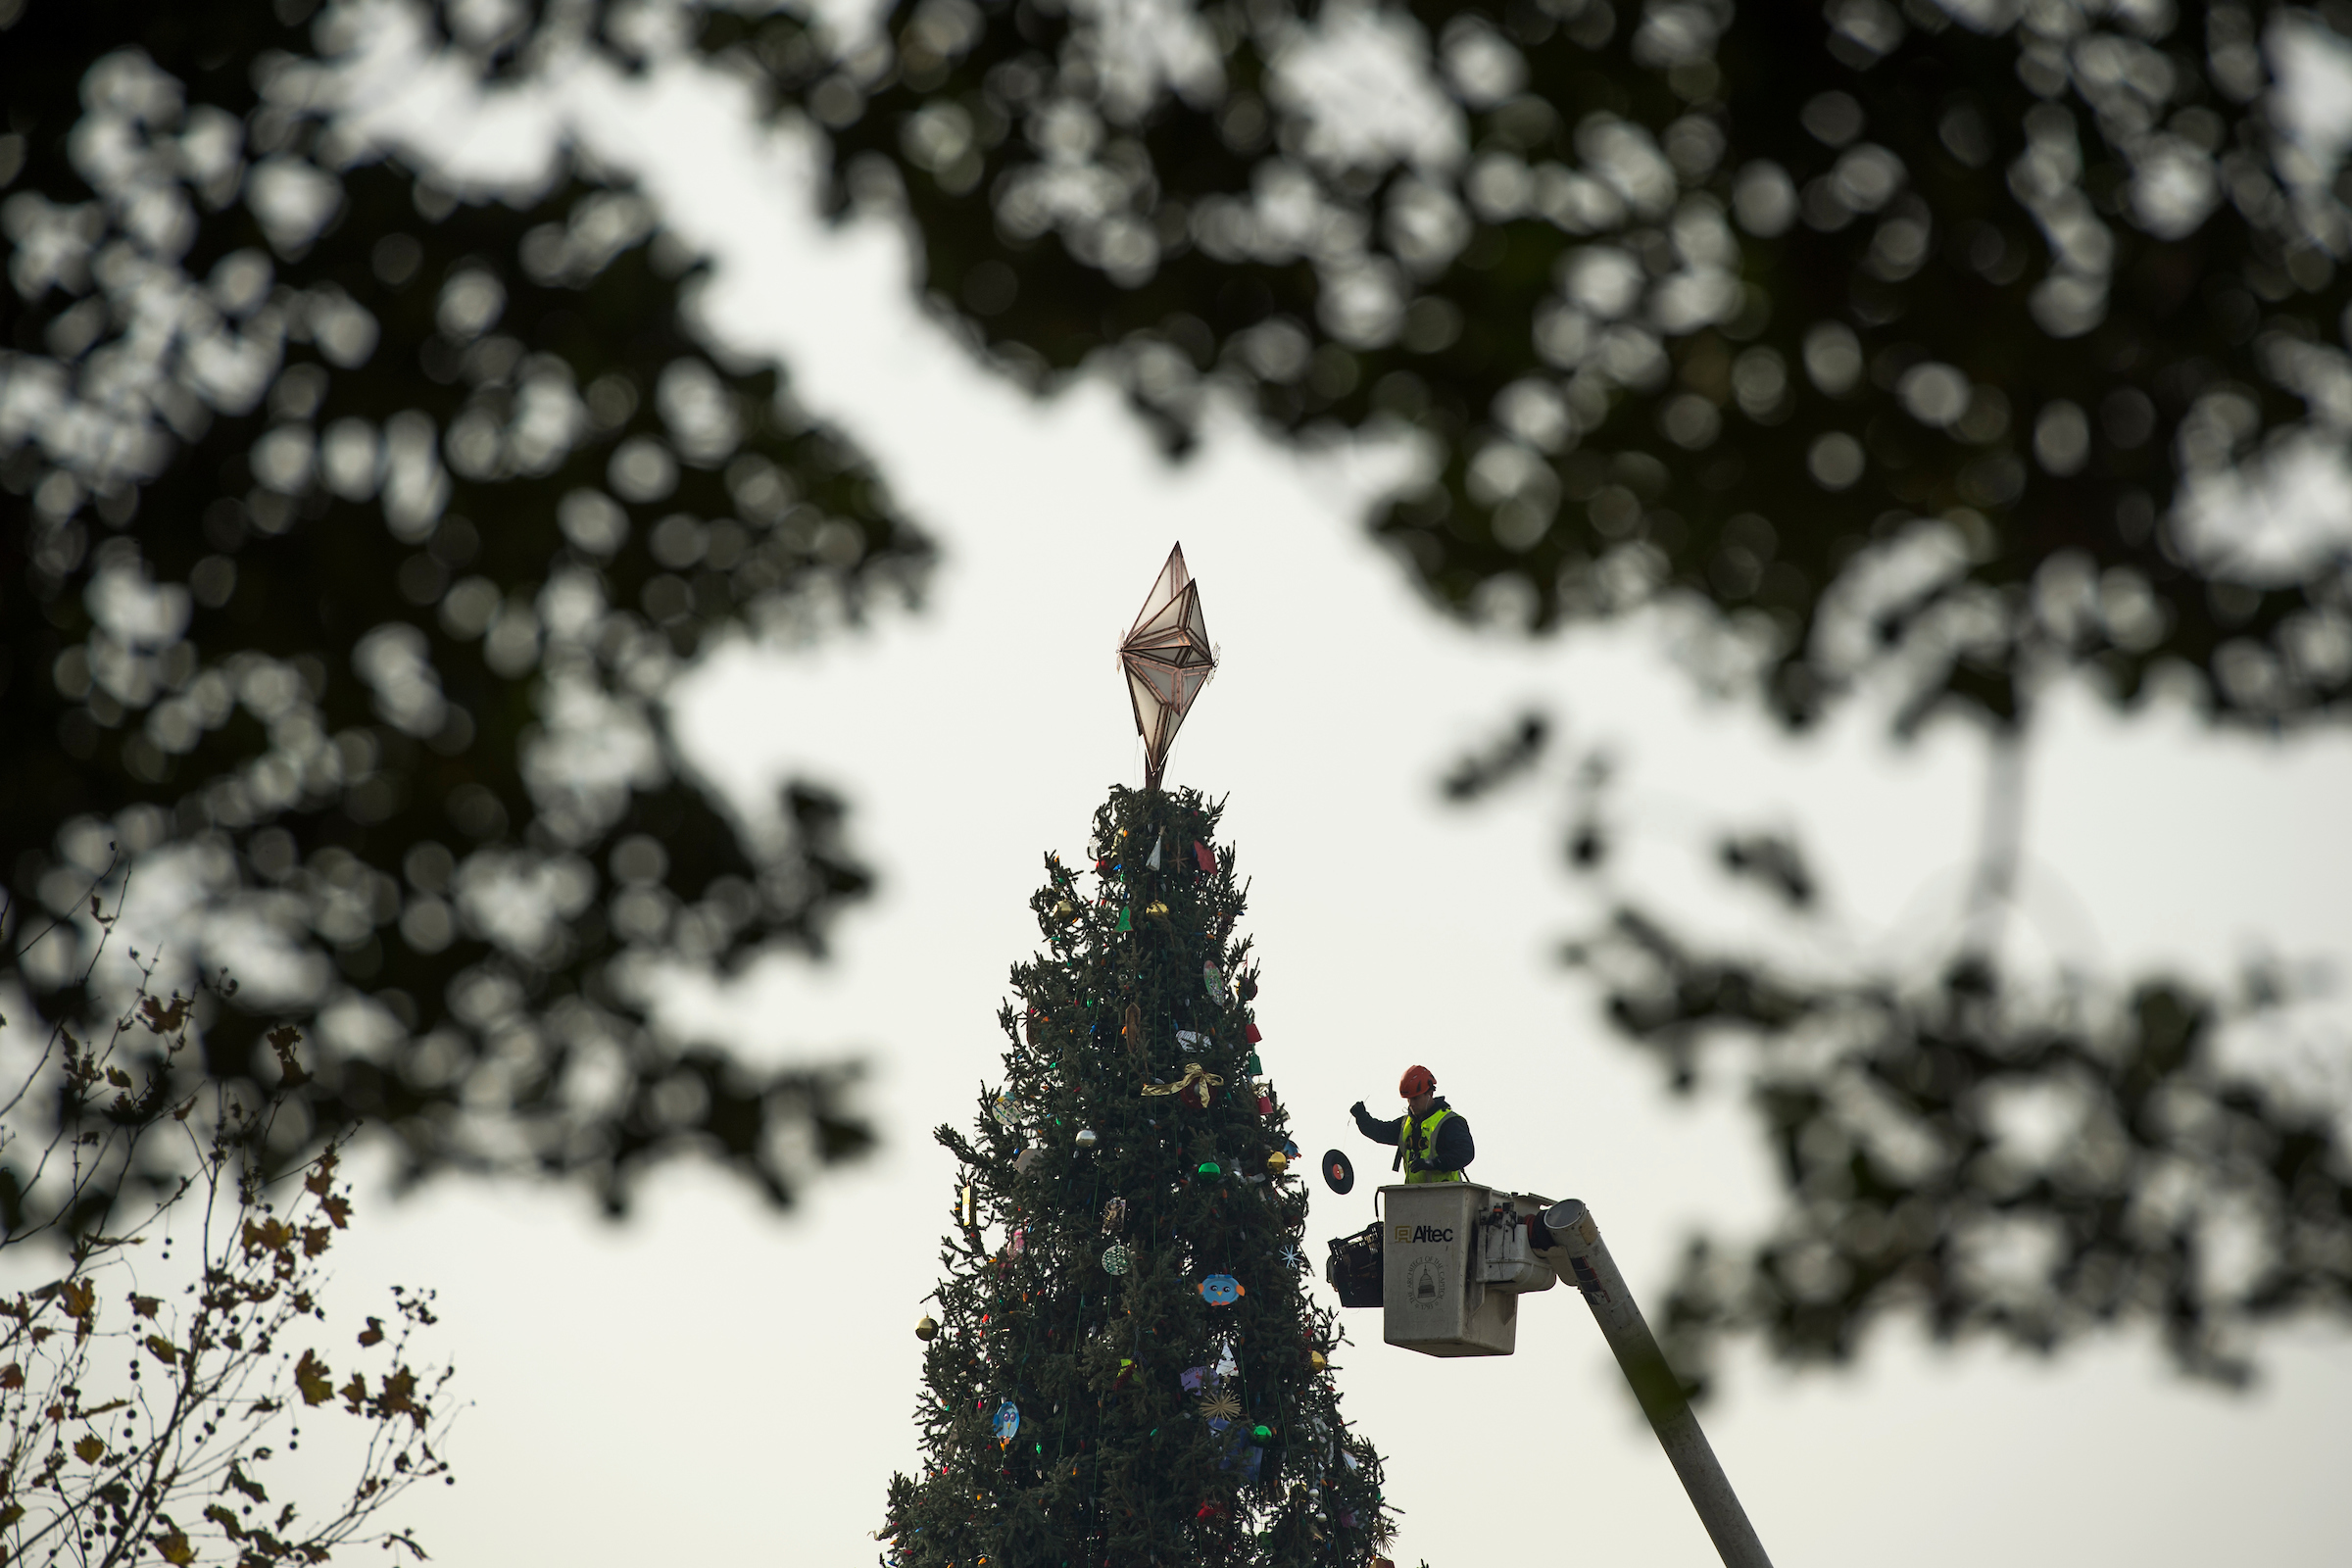 UNITED STATES - DECEMBER 04: A worker from the Architect of the Capitol decorates the U.S. Capitol Christmas Tree which was harvested from Montana's Kootenai National Forest, on the west lawn on December 4, 2017, ahead Wednesday's lighting ceremony. (Photo By Tom Williams/CQ Roll Call)